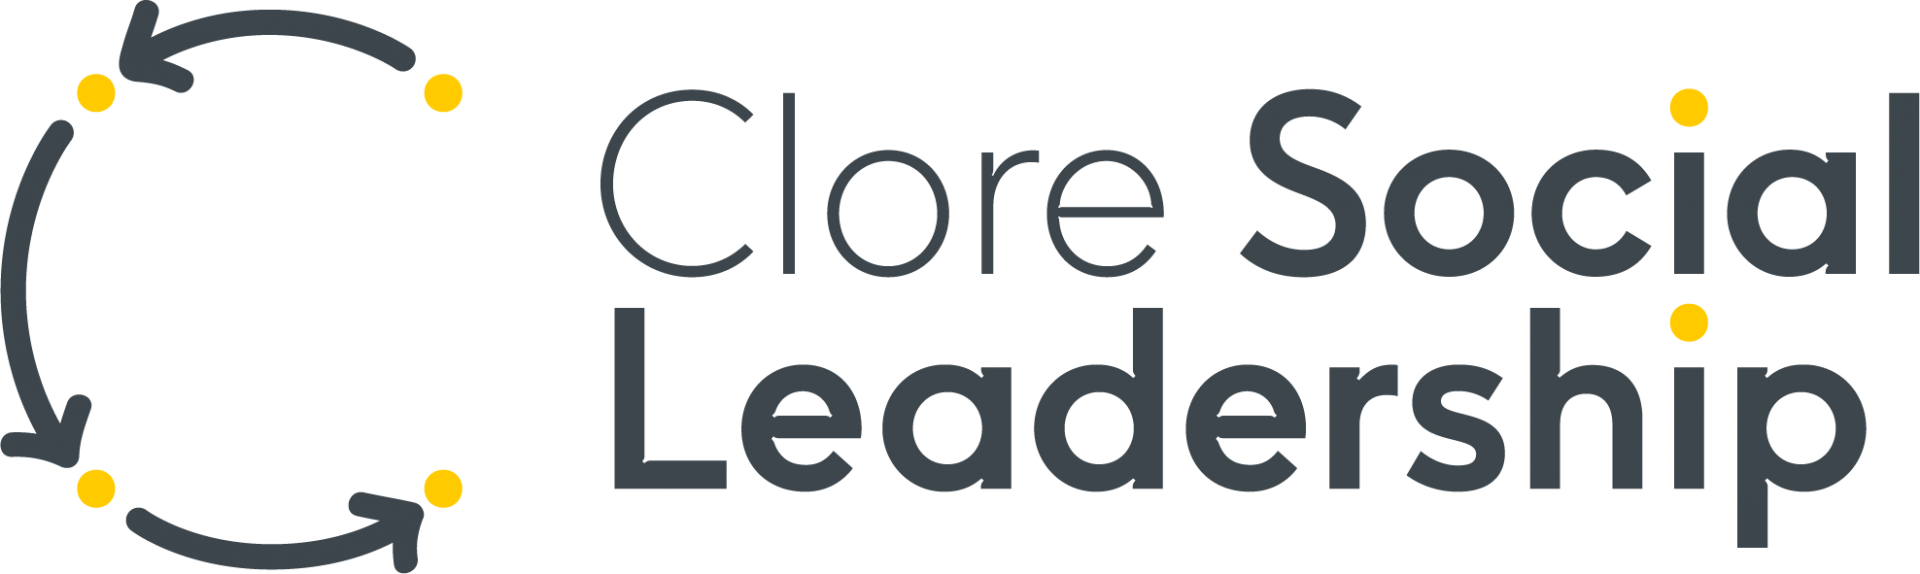 Clore Social Leadership Logo - without background